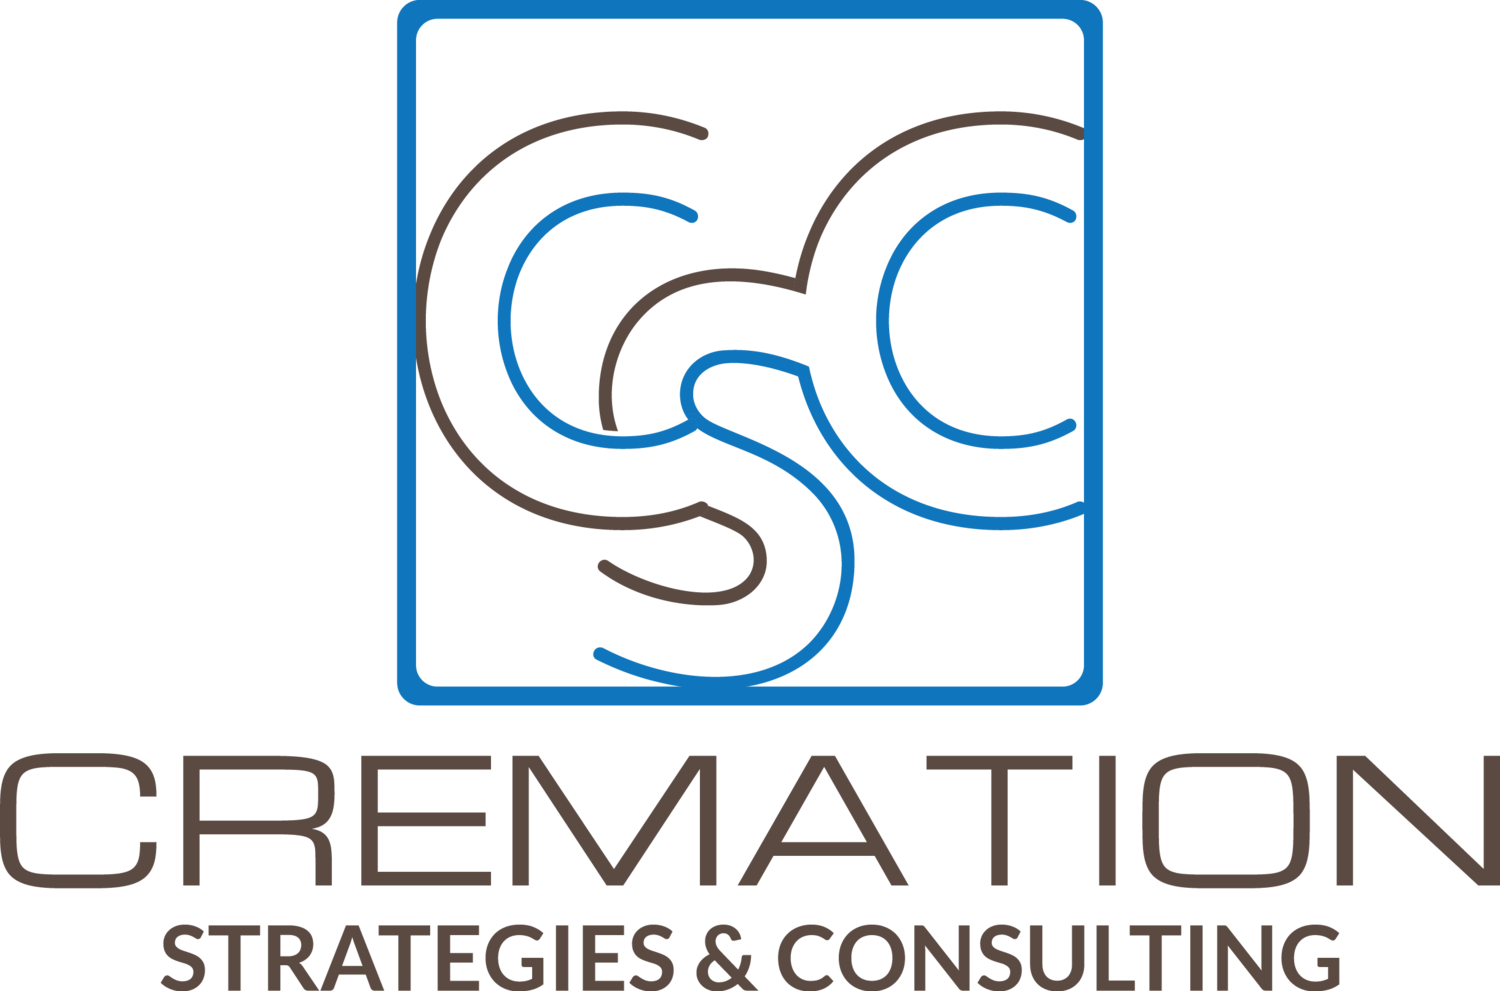 Cremation Strategies & Consulting